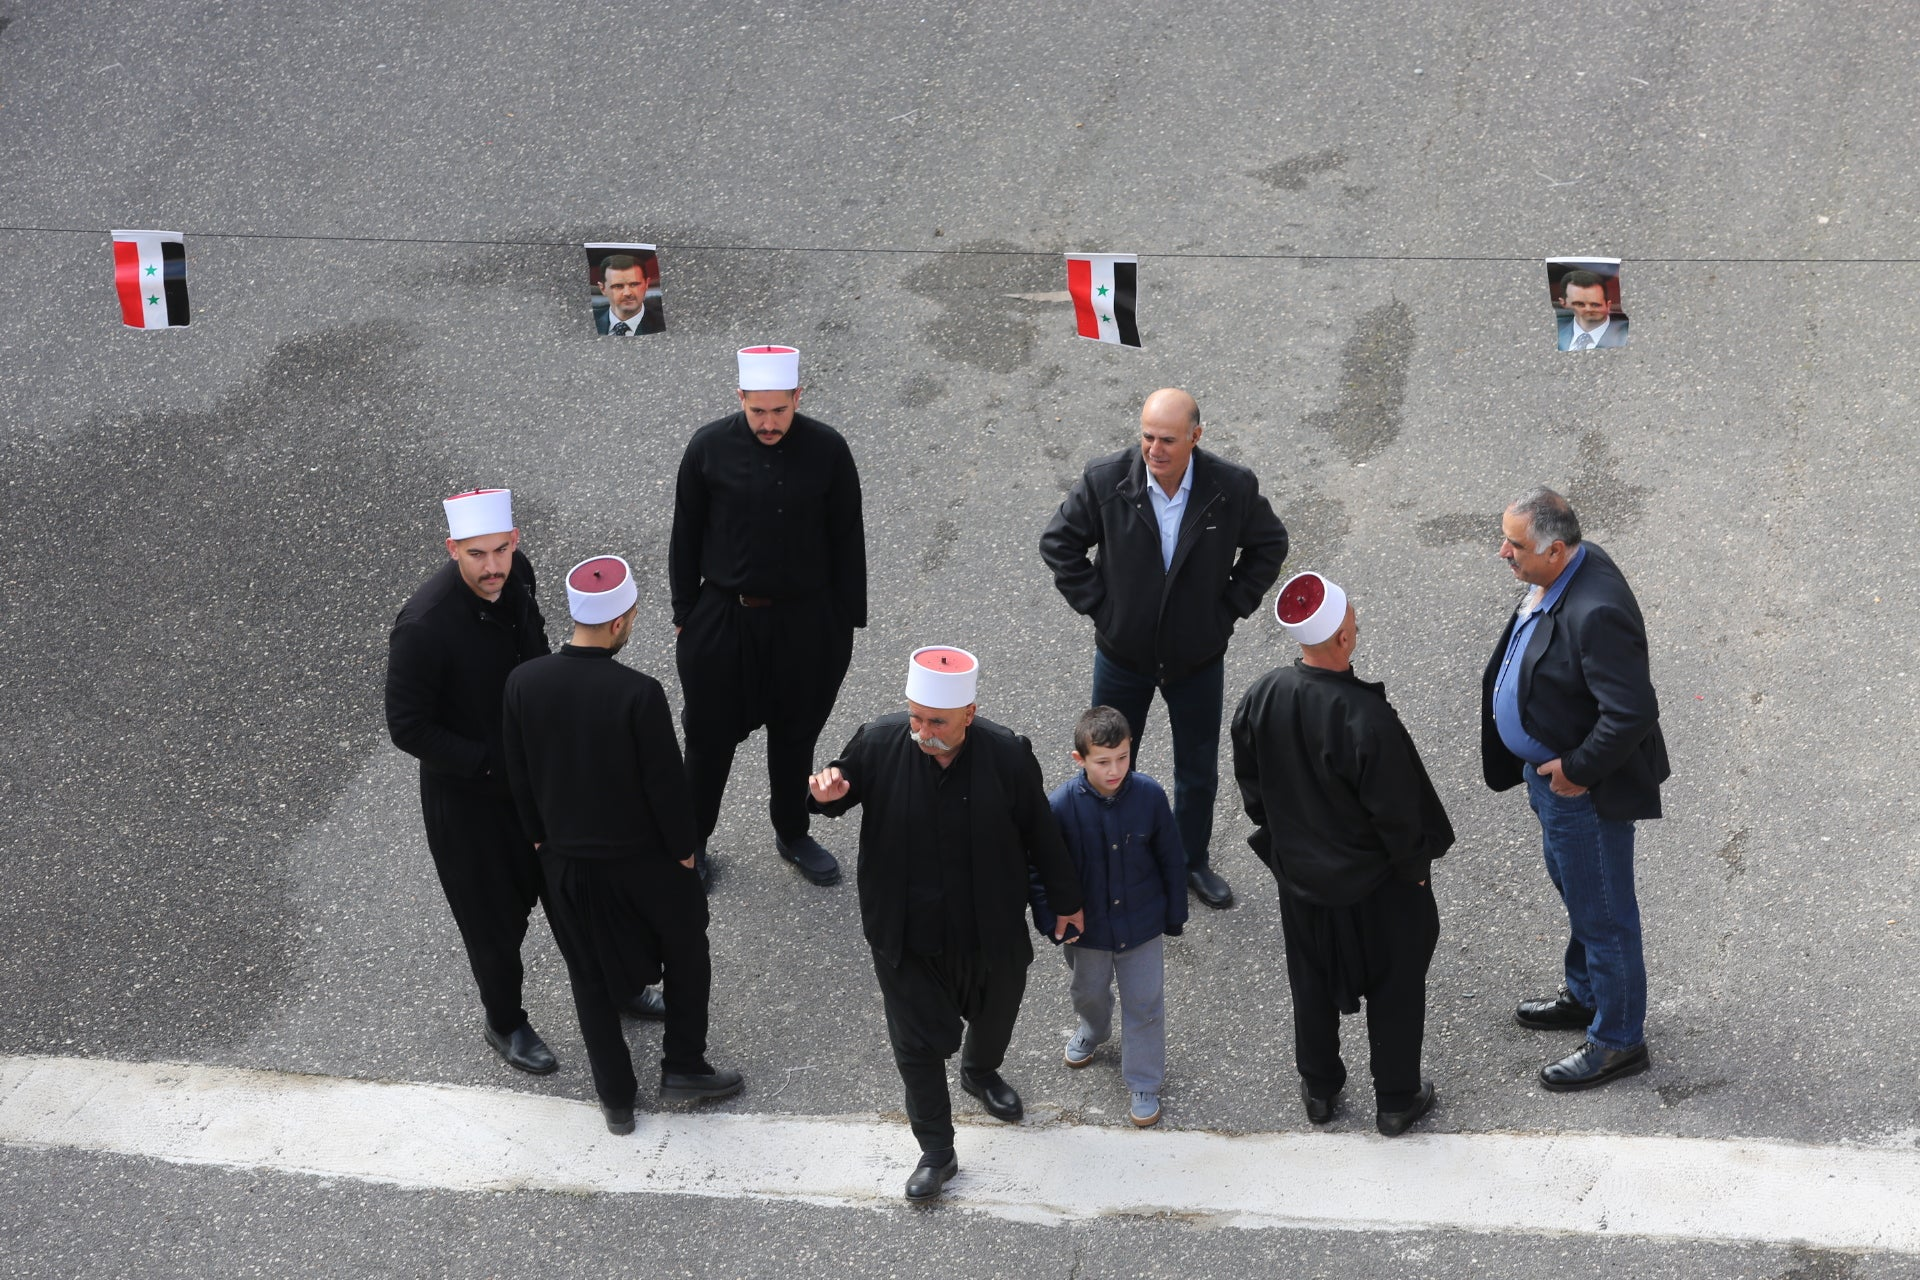 Israeli Druze protest in solidarity with their brethren in Syria, February 14, 2016.